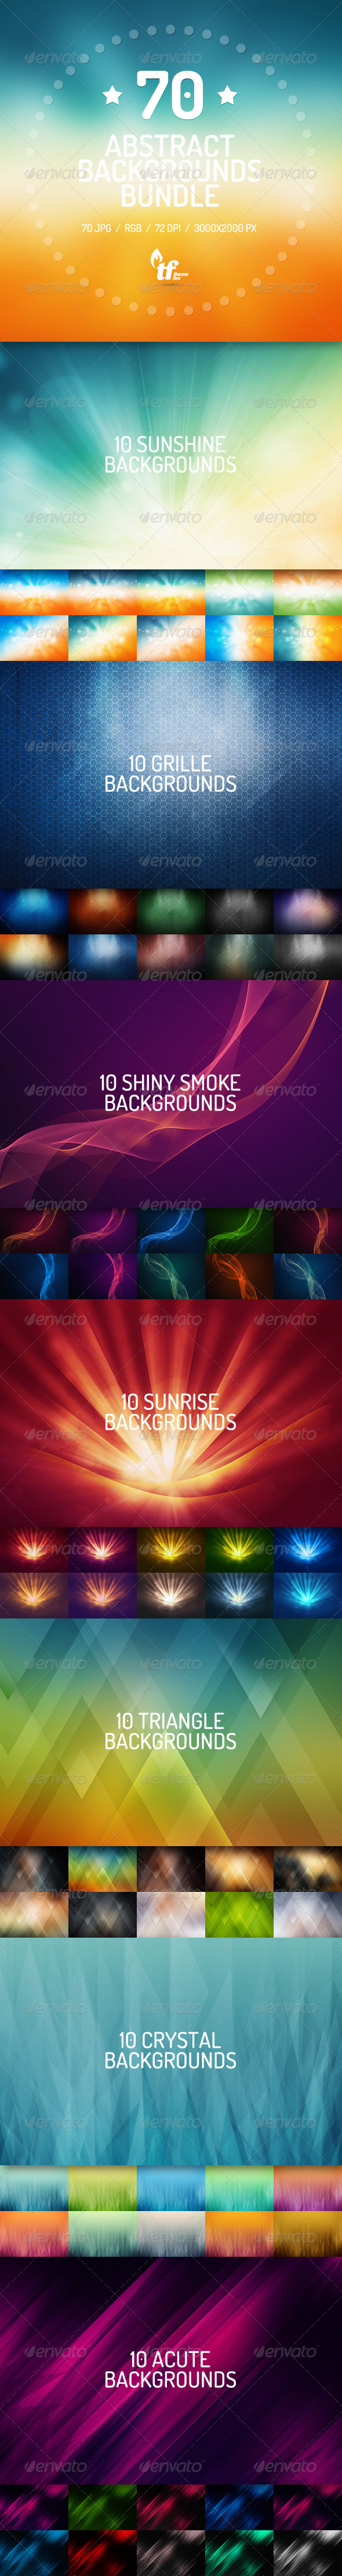 GraphicRiver 70 Abstract Backgrounds Bundle 7652423